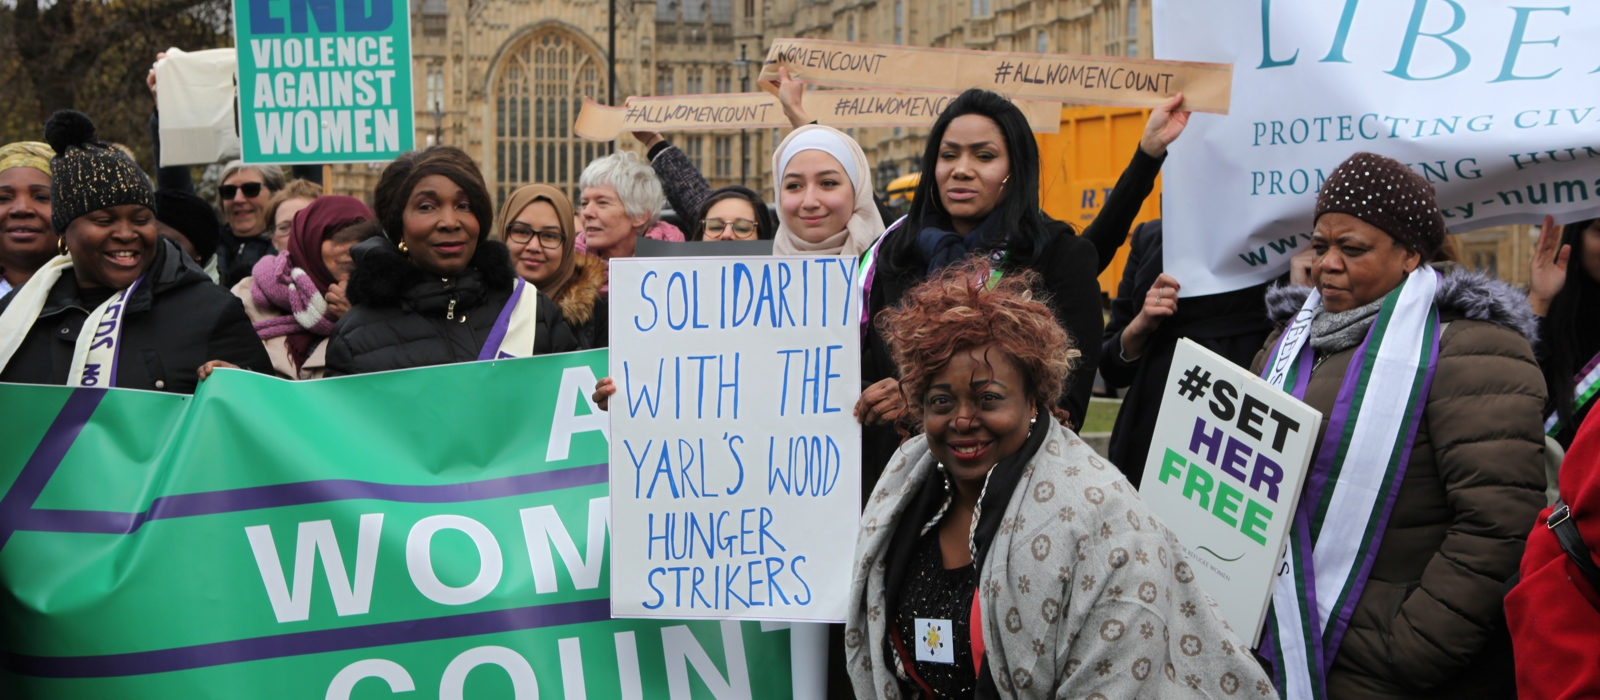 90 years after Equal Franchise, suffrage campaigners are inspiring refugee women